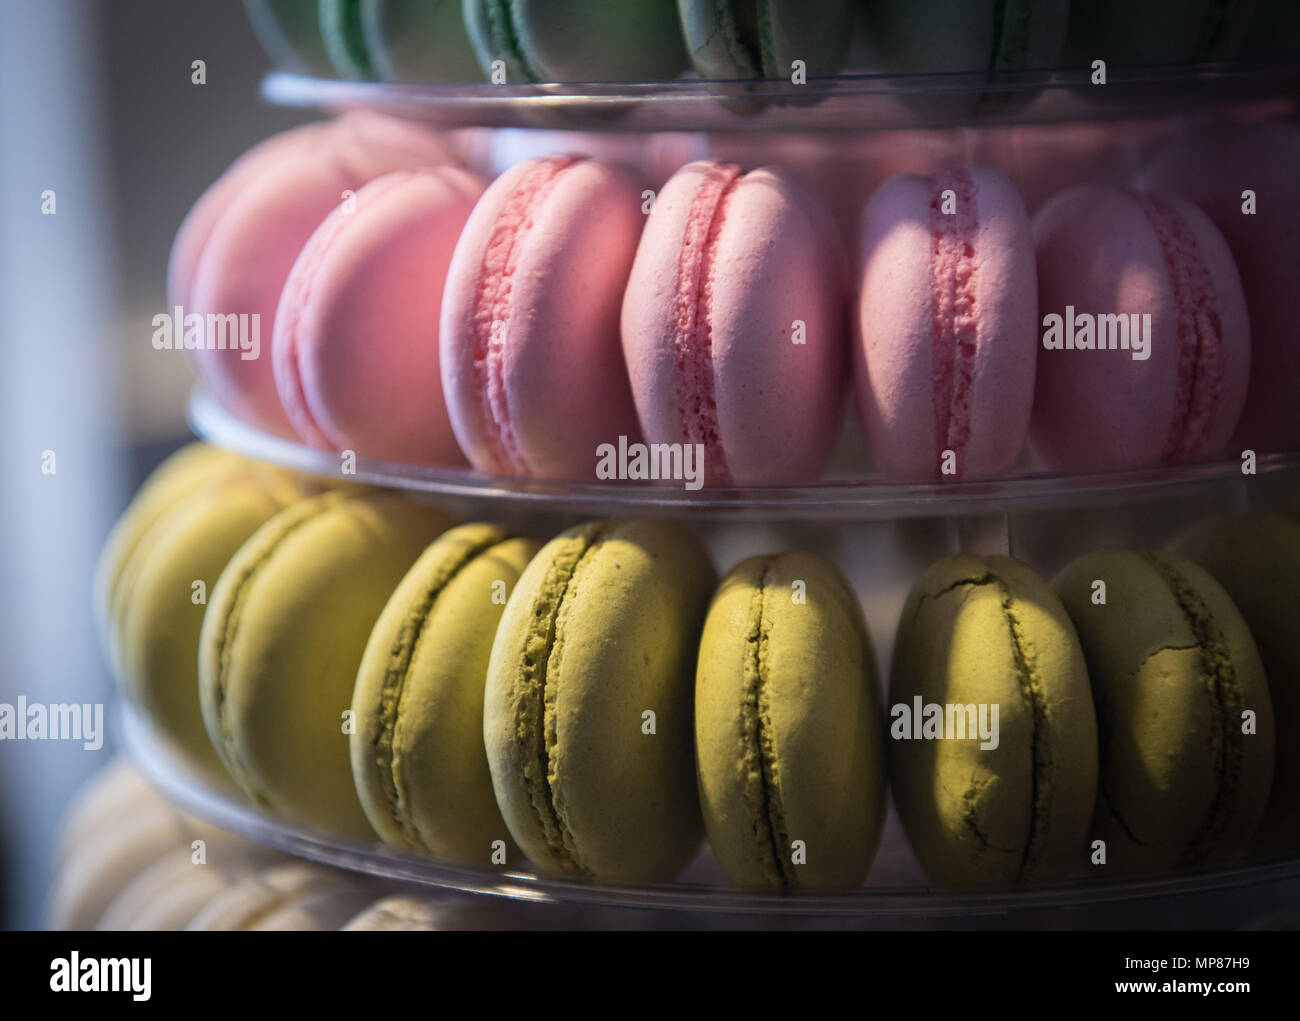 Fresh colourful delicious macarons round sweet biscuits on a plate - Stock Image